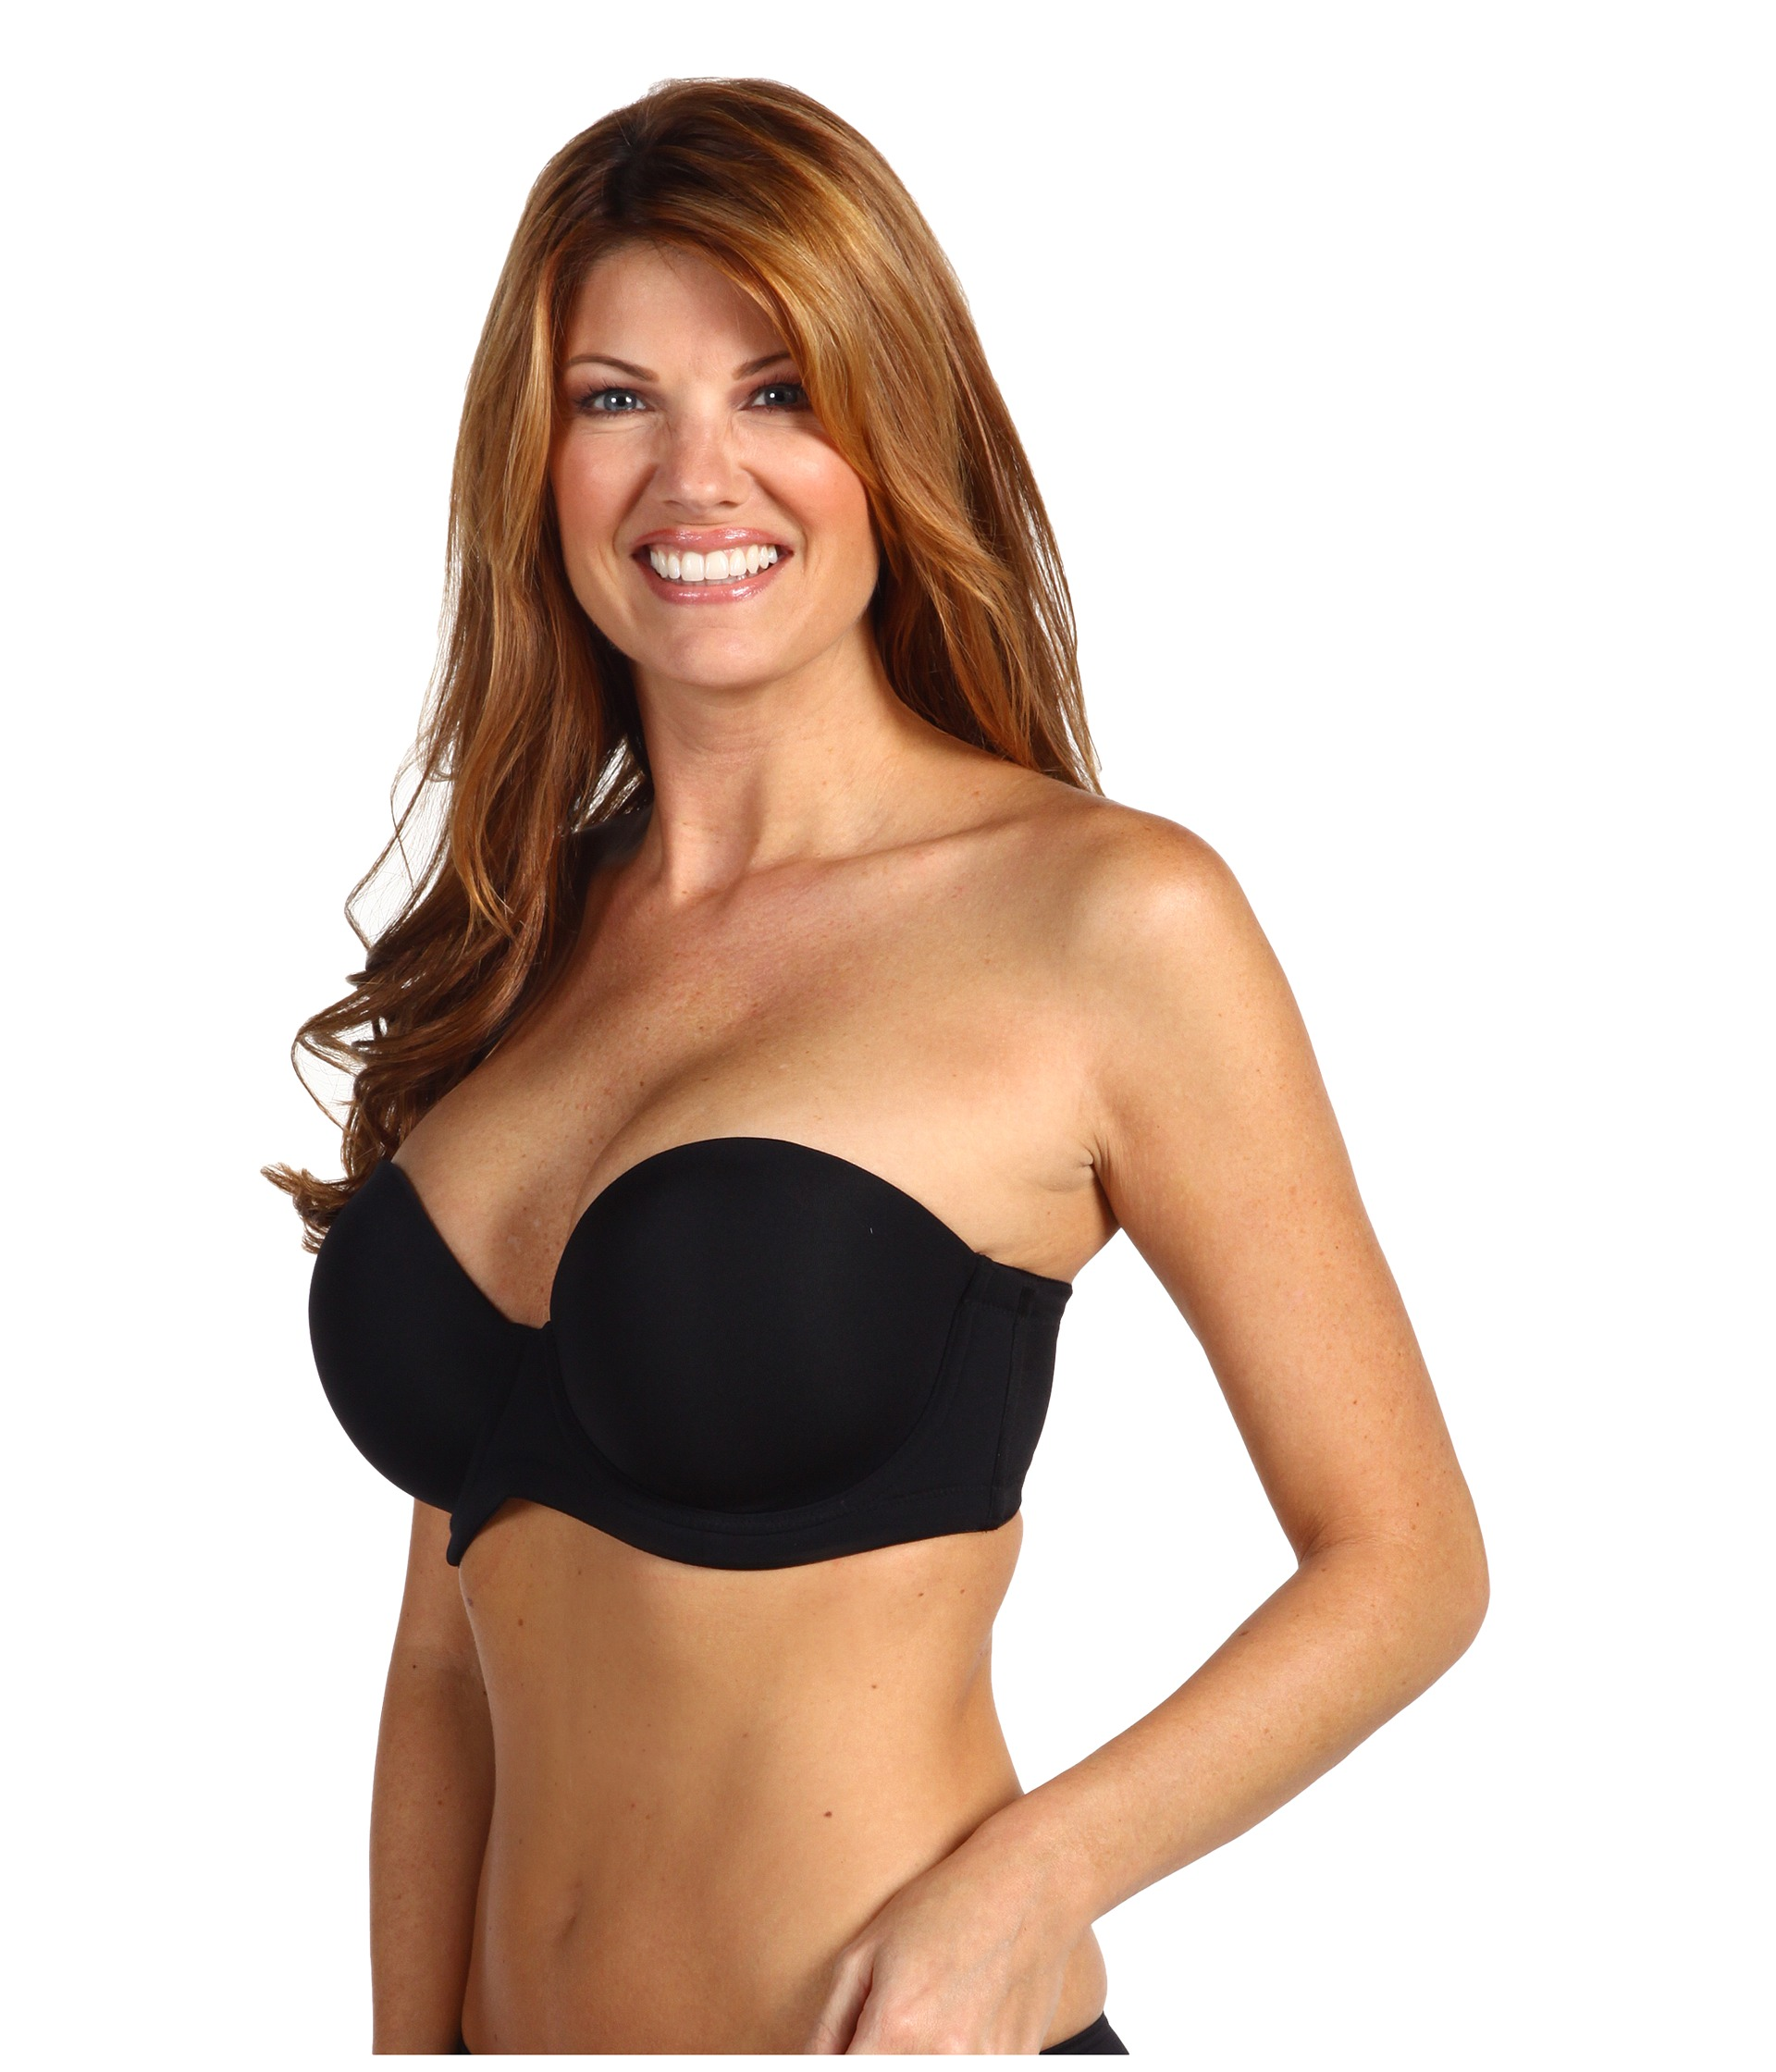 Wacoal Red Carpet Full-Busted Strapless Bra 854119 at Zappos.com